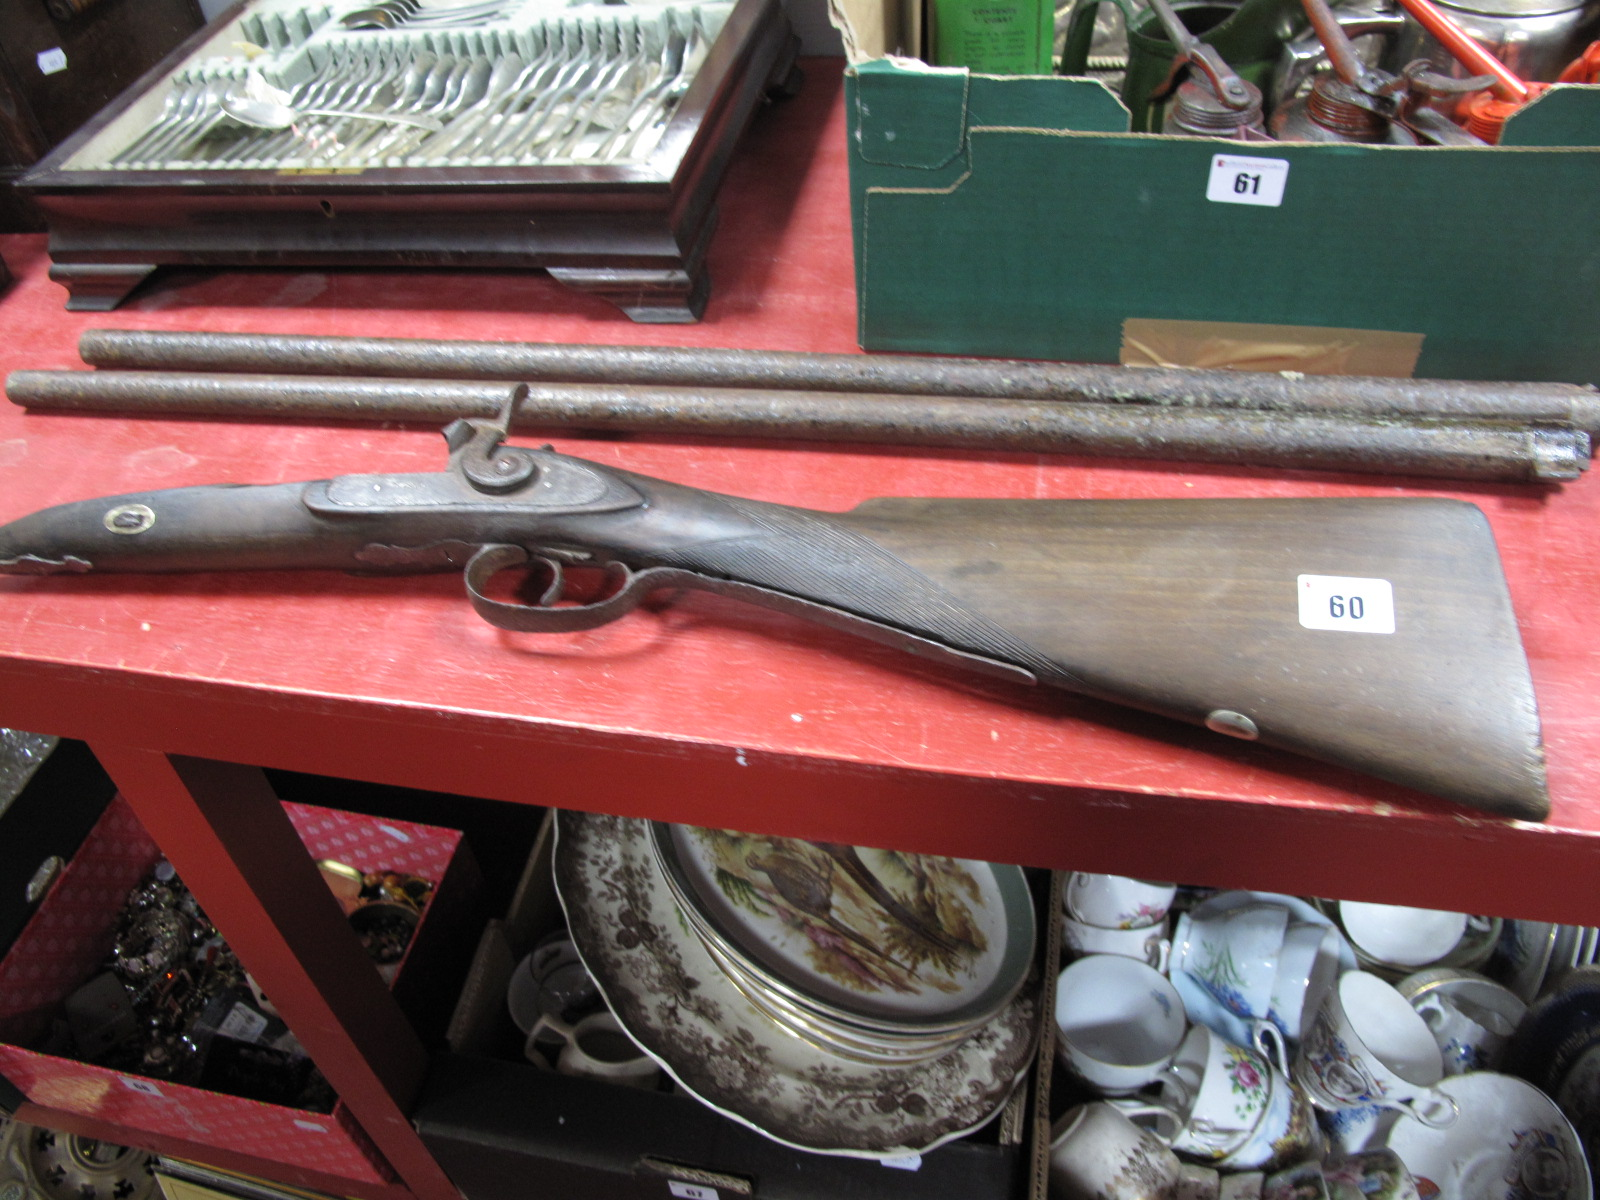 Lot 60 - Components of a XIX Century Percussion Gun, including lock, stock and two barrels, engraved '